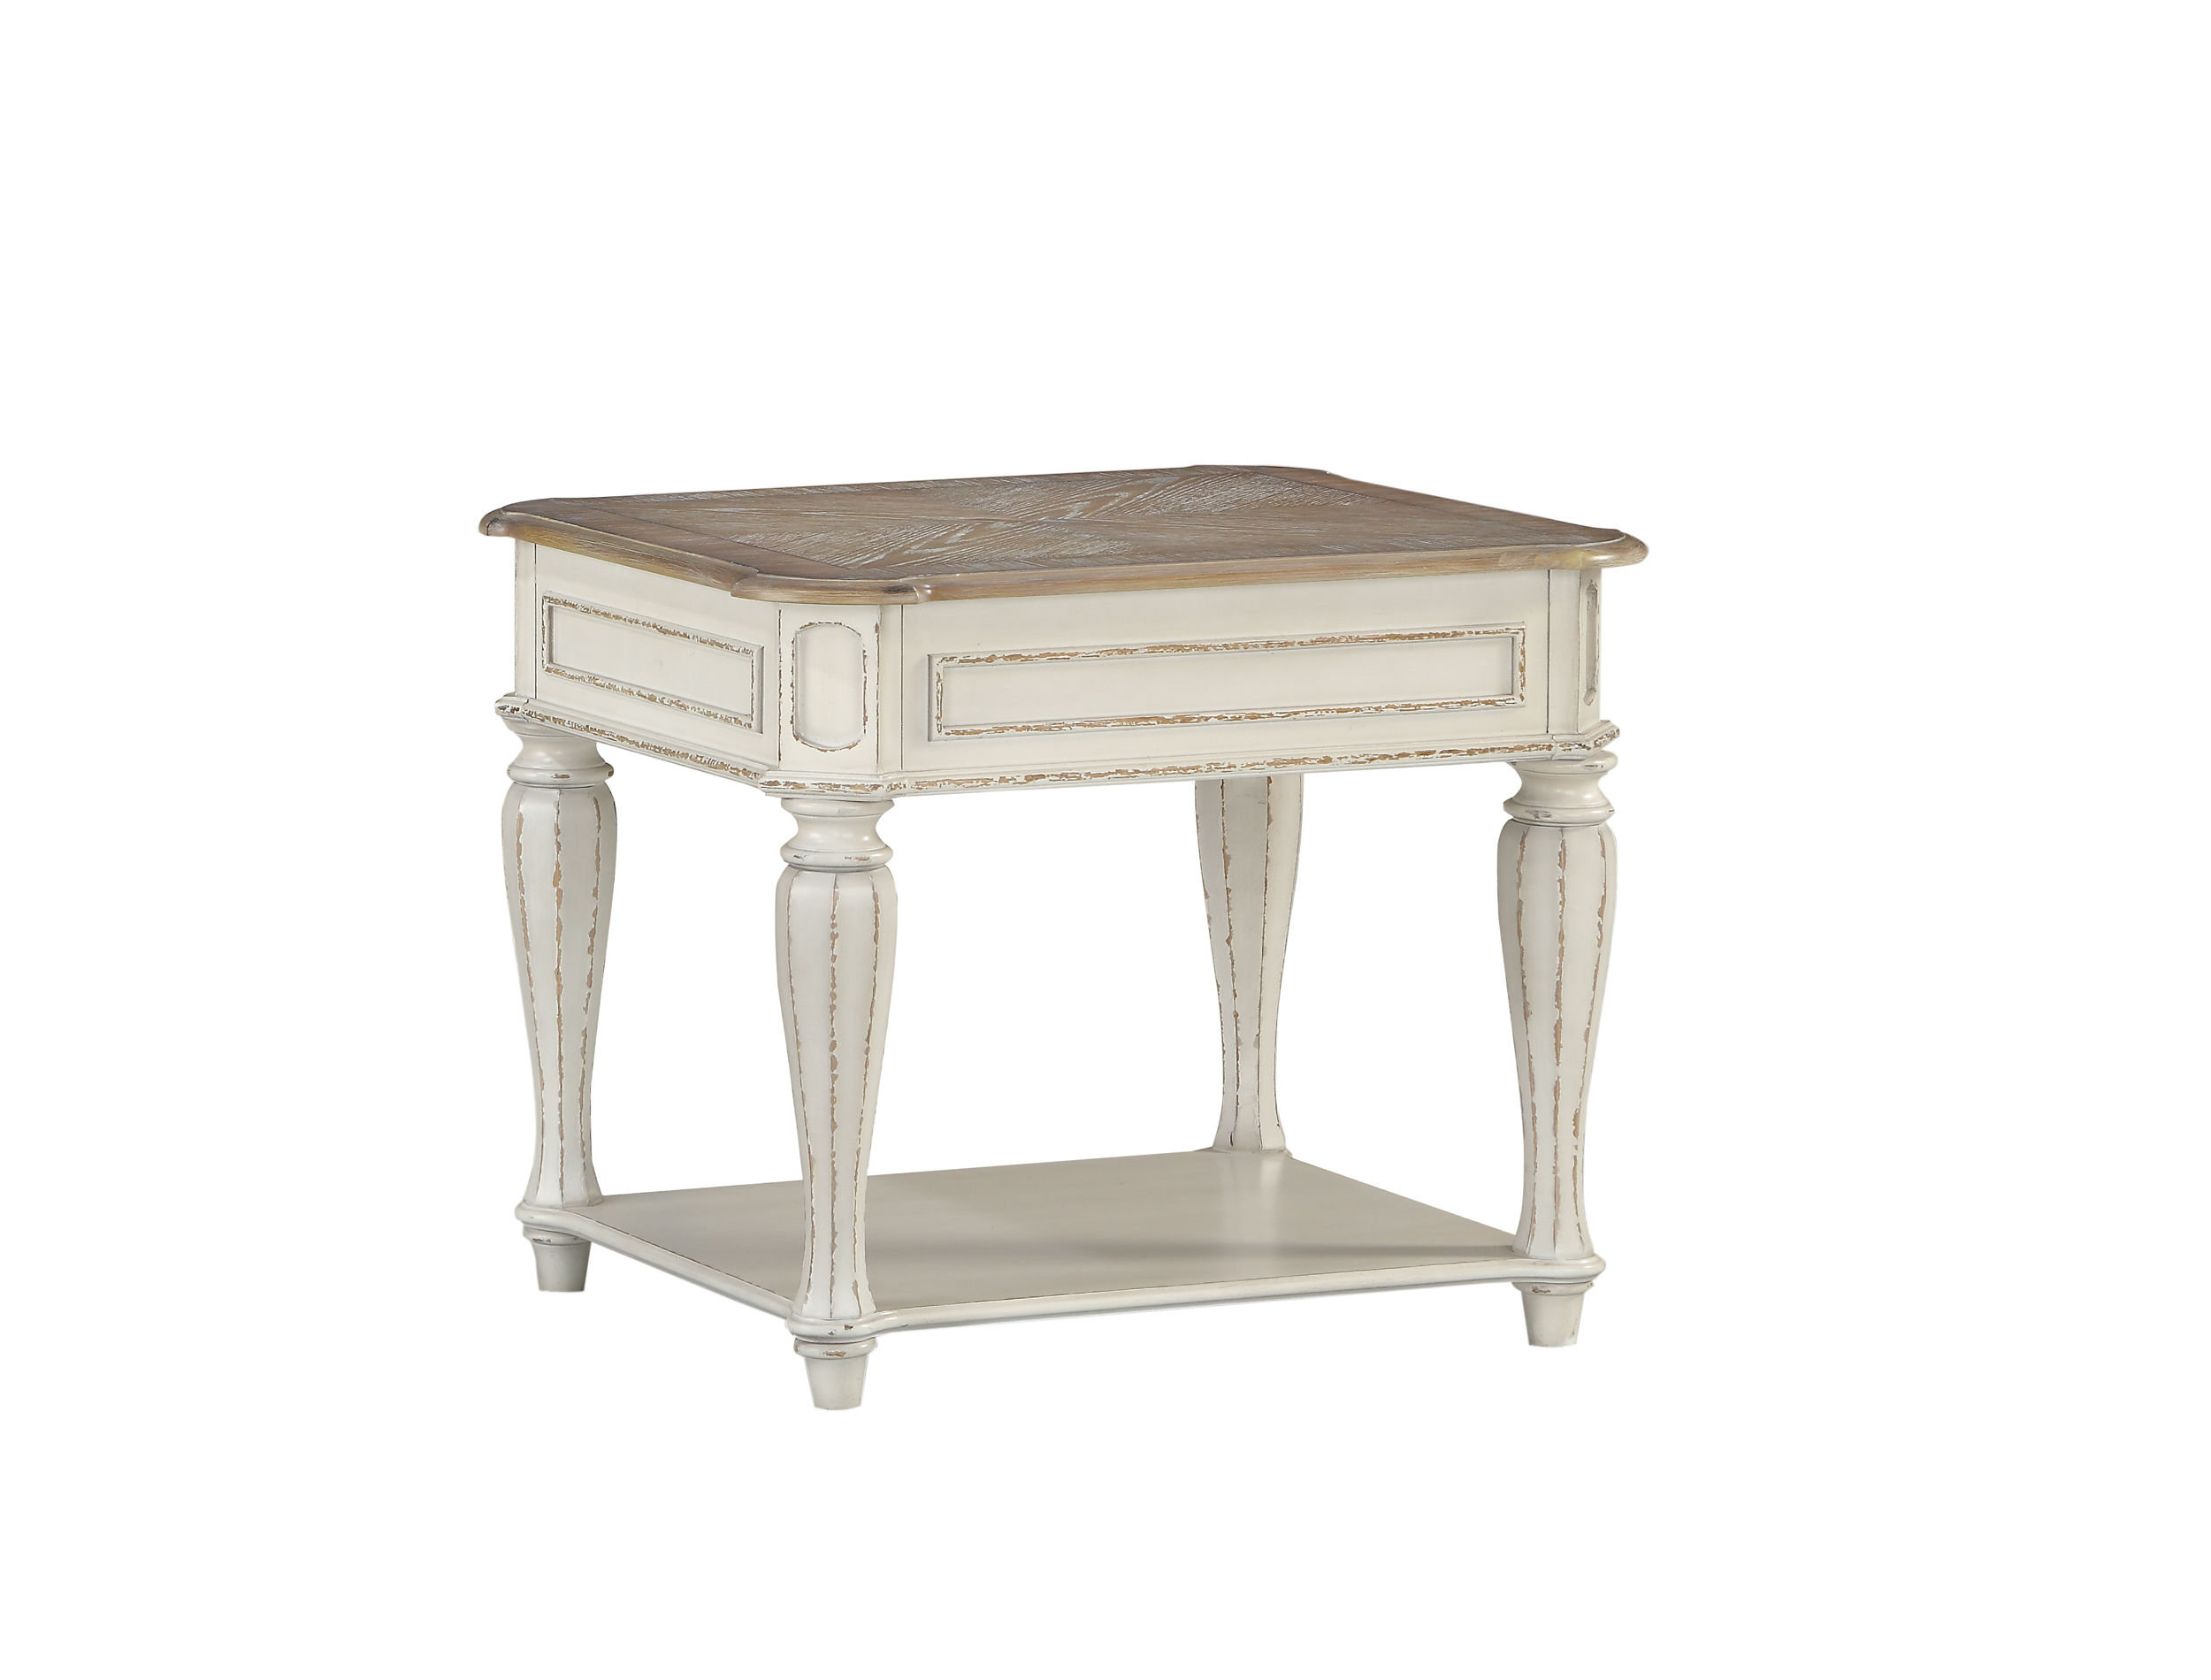 standard furniture stevenson manor white end table the classy home std distressed look tables click enlarge xxl dog crate ashley dining set black high gloss console cool side